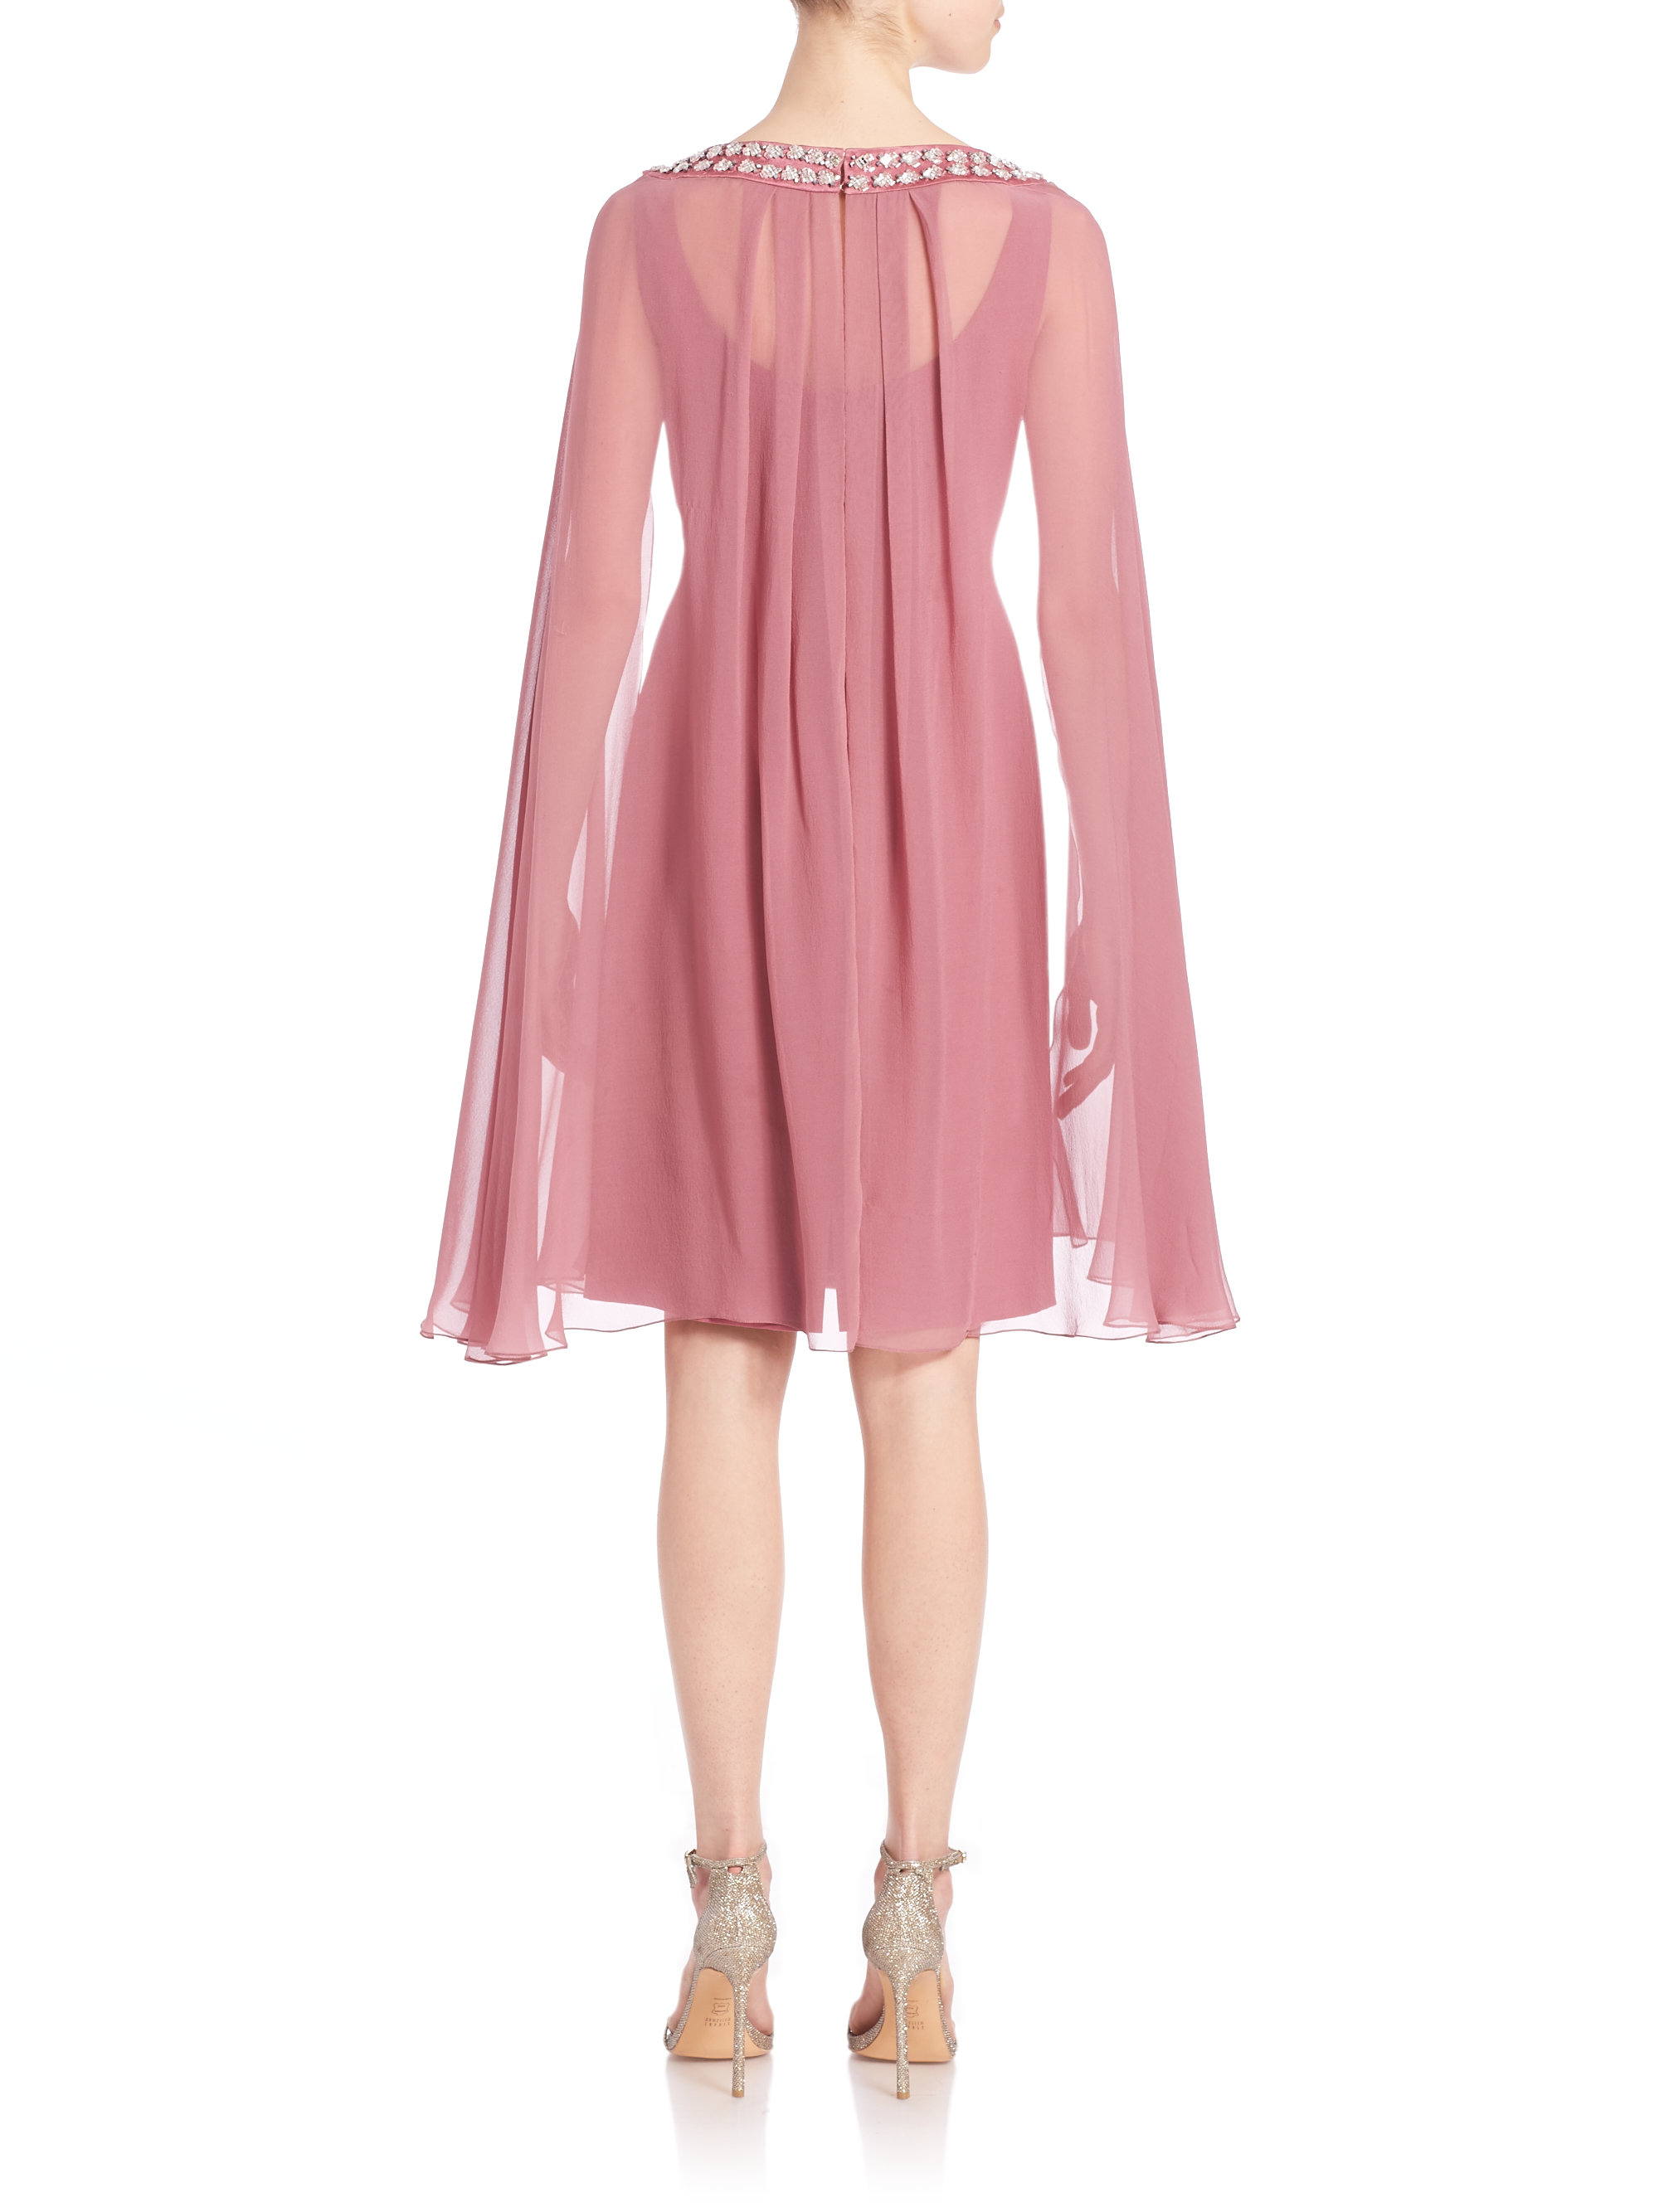 Lyst Kay Unger Stretch Tulle Cape Dress In Pink